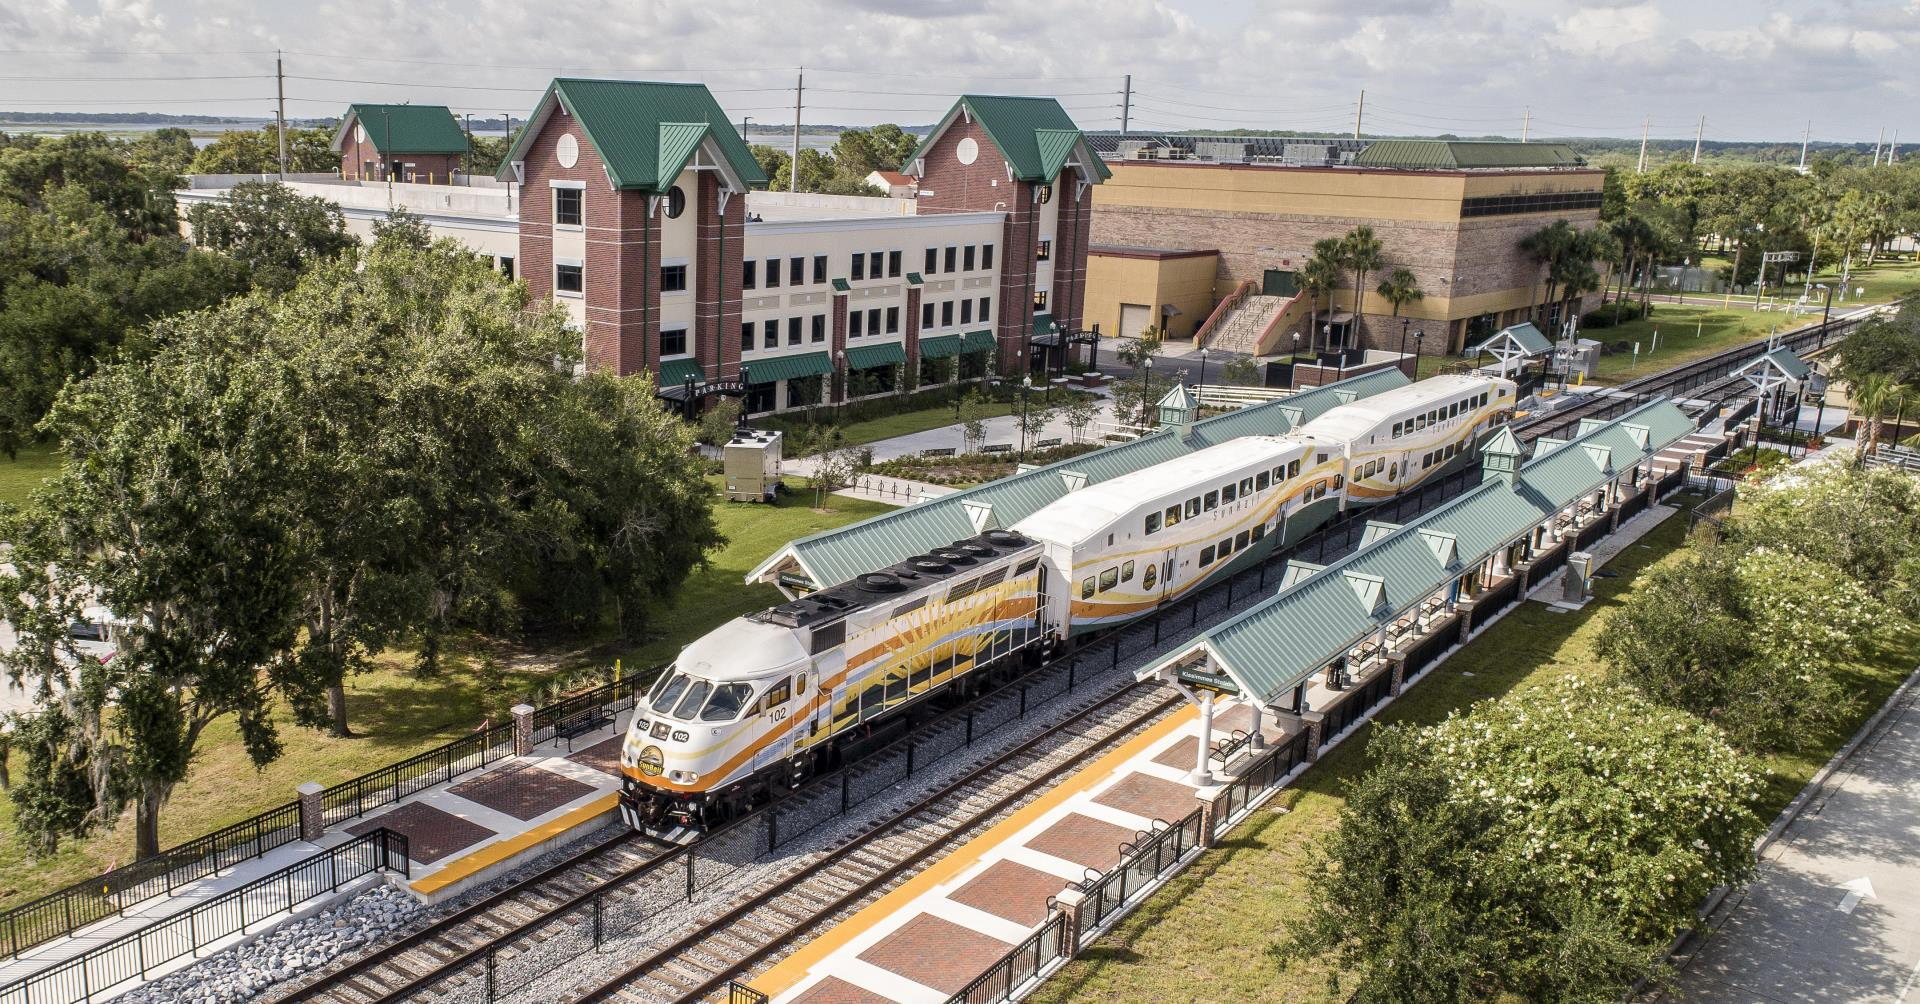 Downtown Kissimmee SunRail Station with train